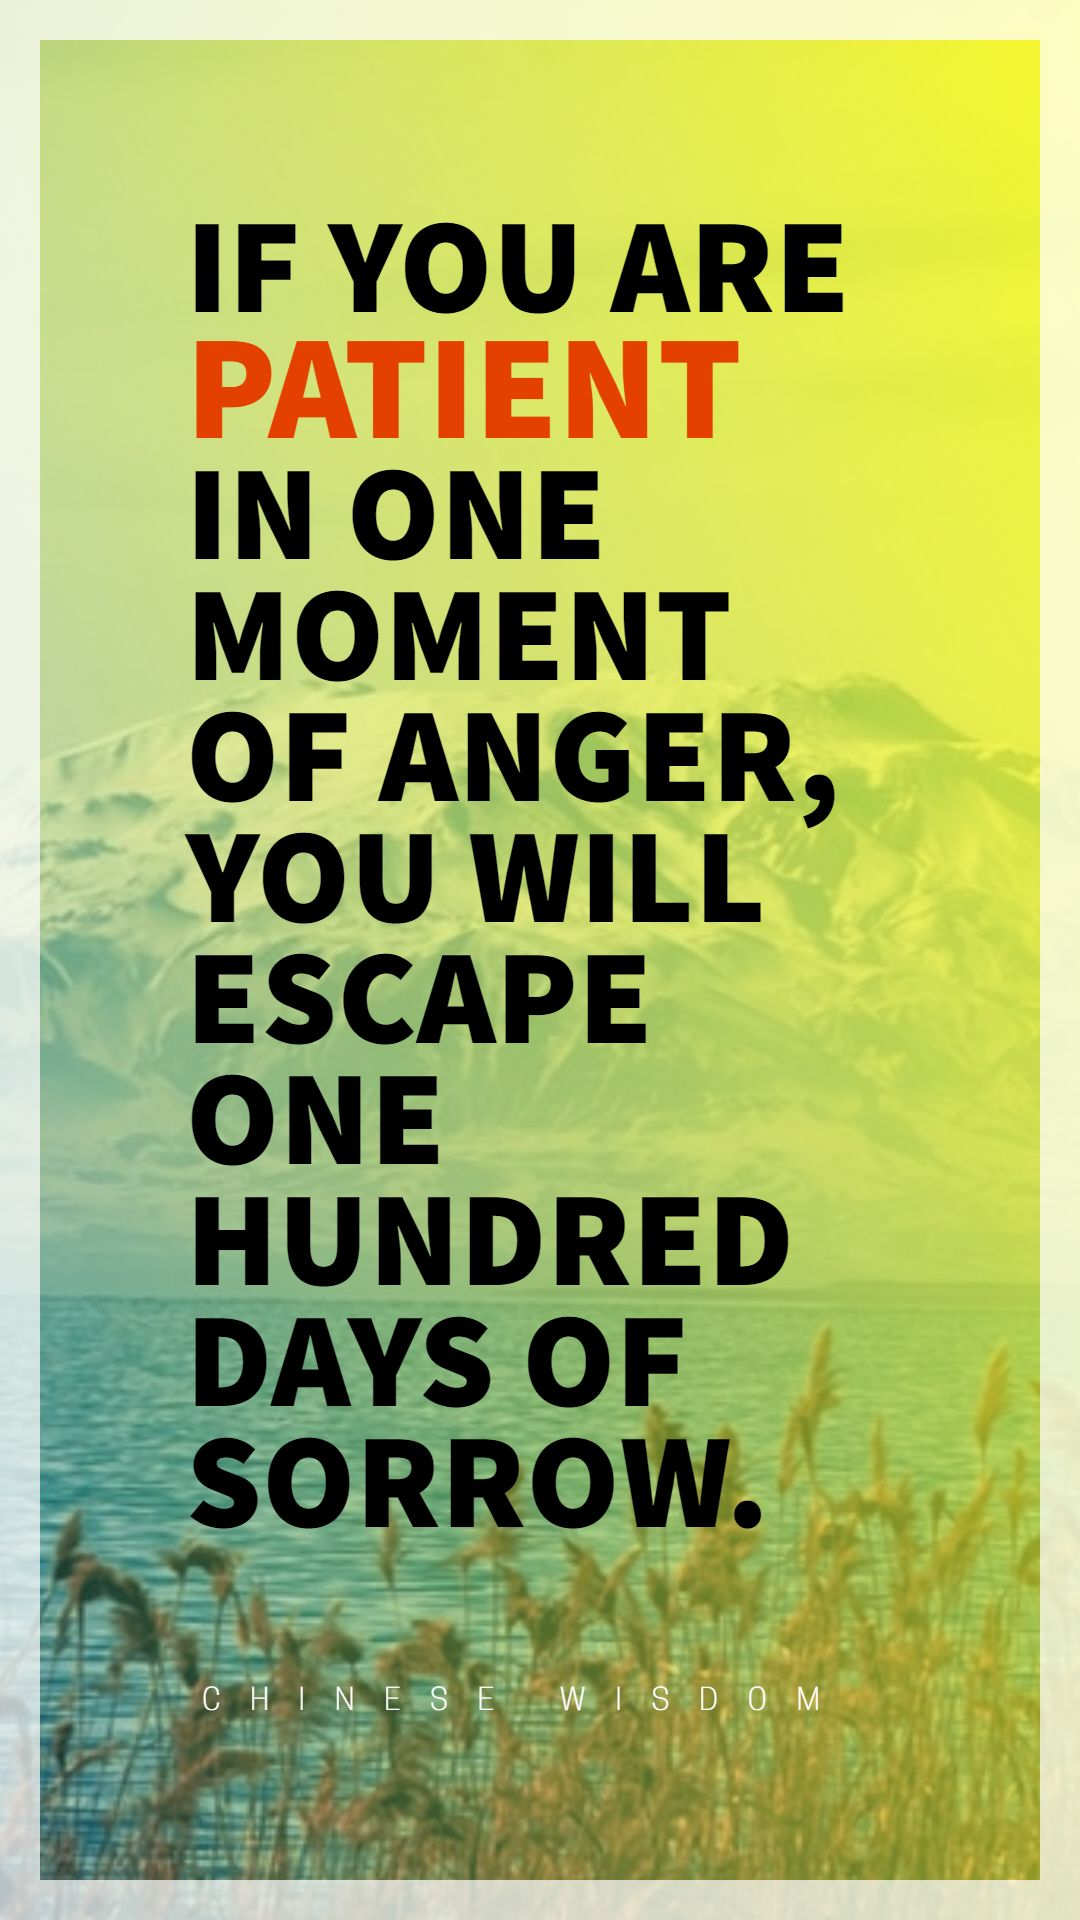 Quotes image of If you are patient in one moment of anger, you will escape one hundred days of sorrow.